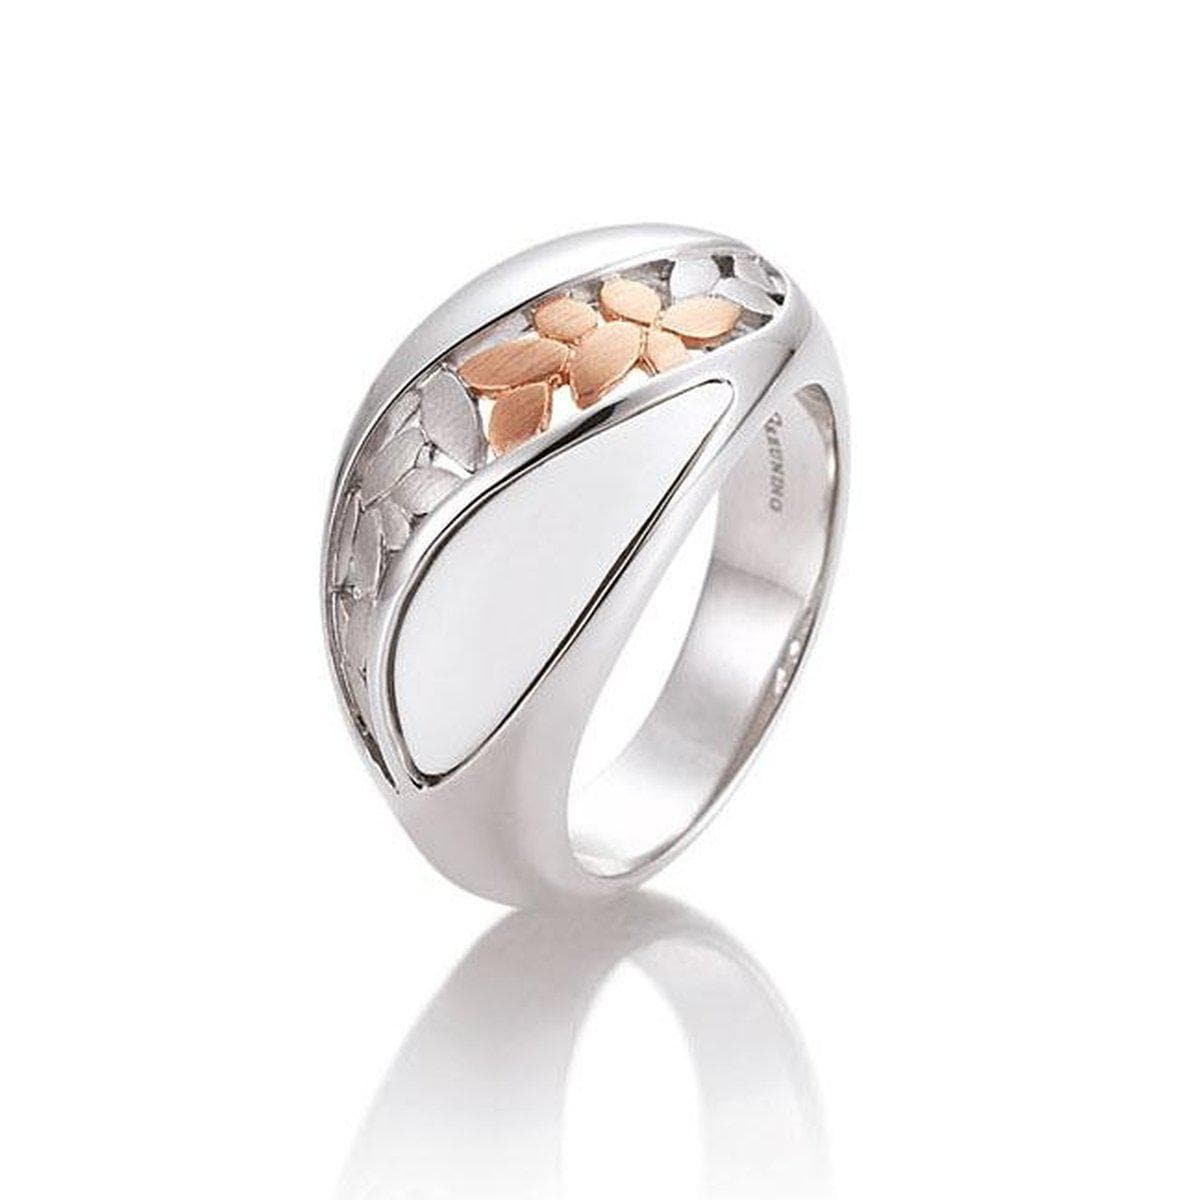 Rose Gold & Rhodium Plated Sterling Silver Ring - 42/03208-Breuning-Renee Taylor Gallery